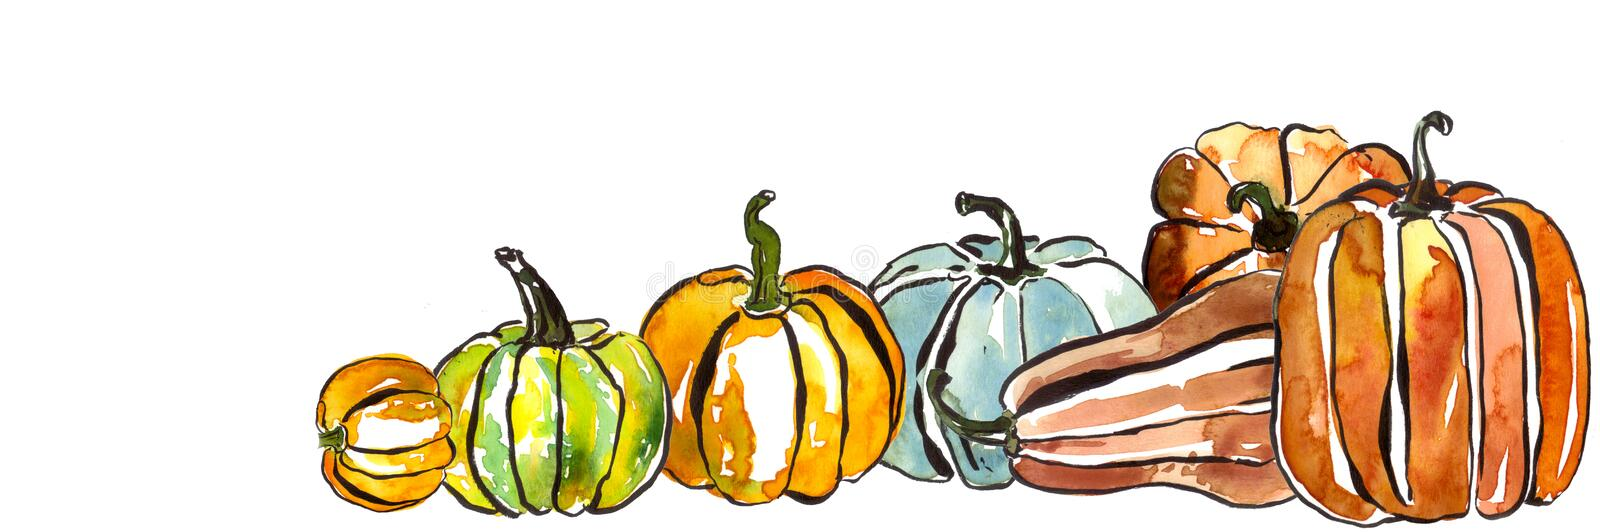 Thanksgiving Clipart Stock Illustrations – 4,460 Thanksgiving Clipart Stock  Illustrations, Vectors & Clipart - Dreamstime